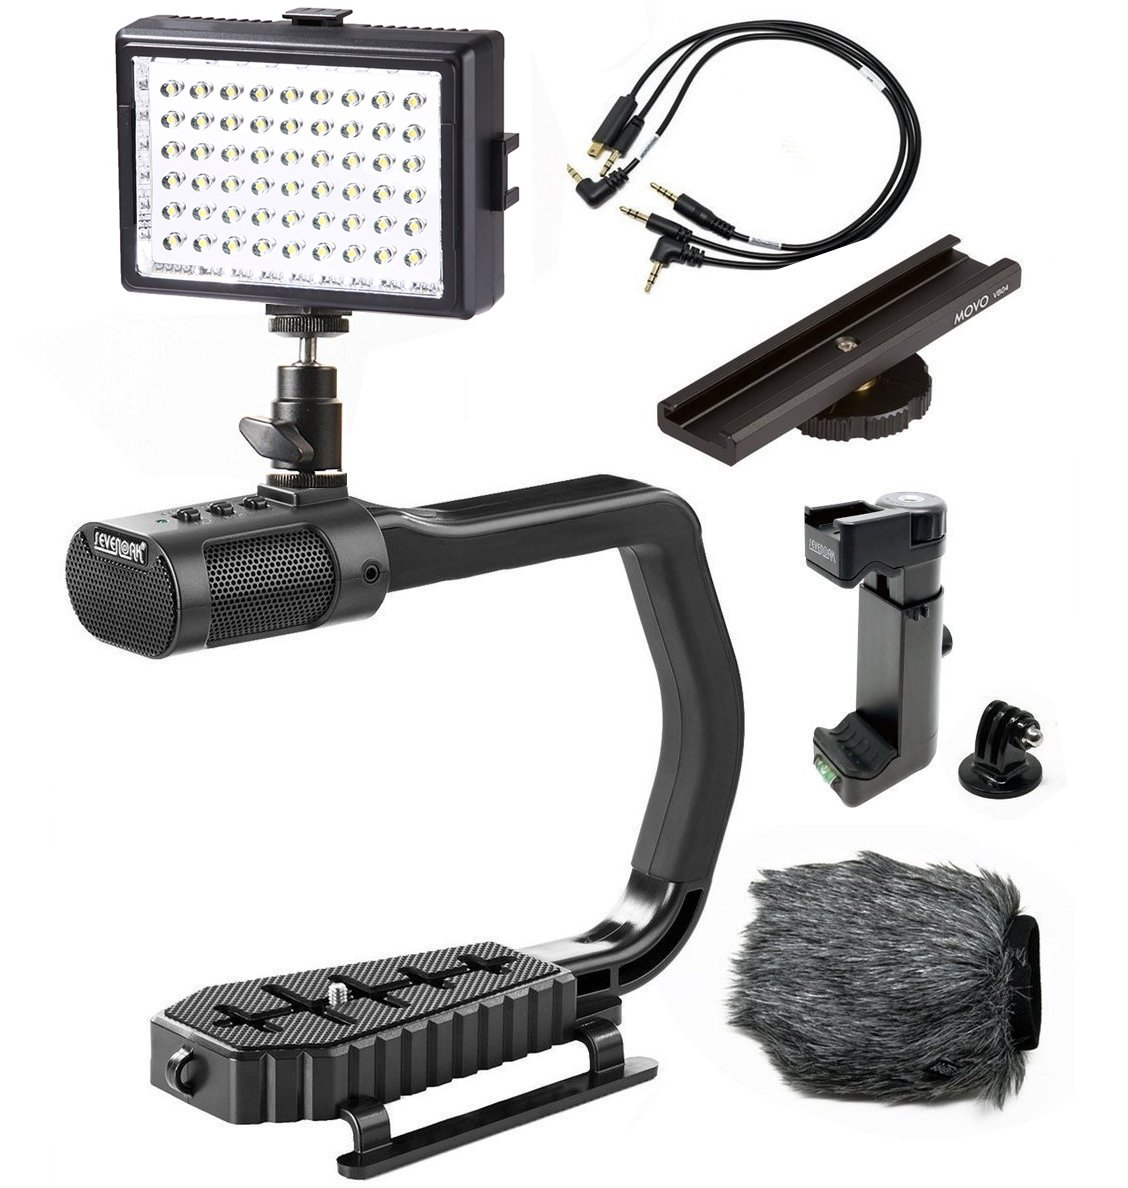 Sevenoak MicRig Video Bundle with Grip Handle, Stereo Microphone, 54 LED Light, Shoe Extender Bracket, Windscreen, Adapters for DSLR Cameras, Smartphones and GoPro by Movo